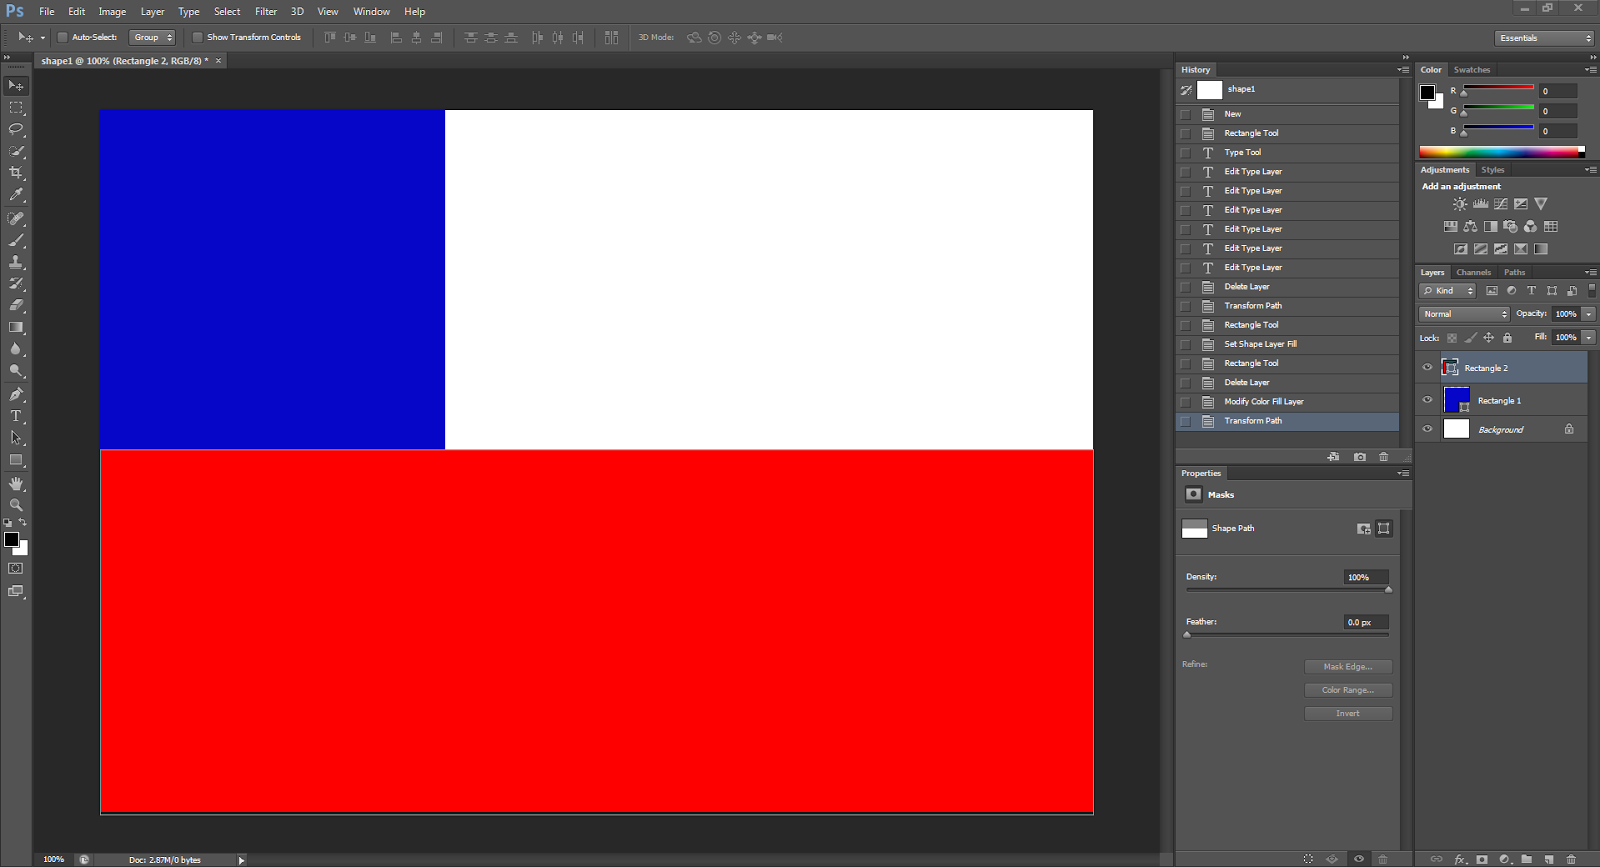 using the shape tool to create a red rectangle